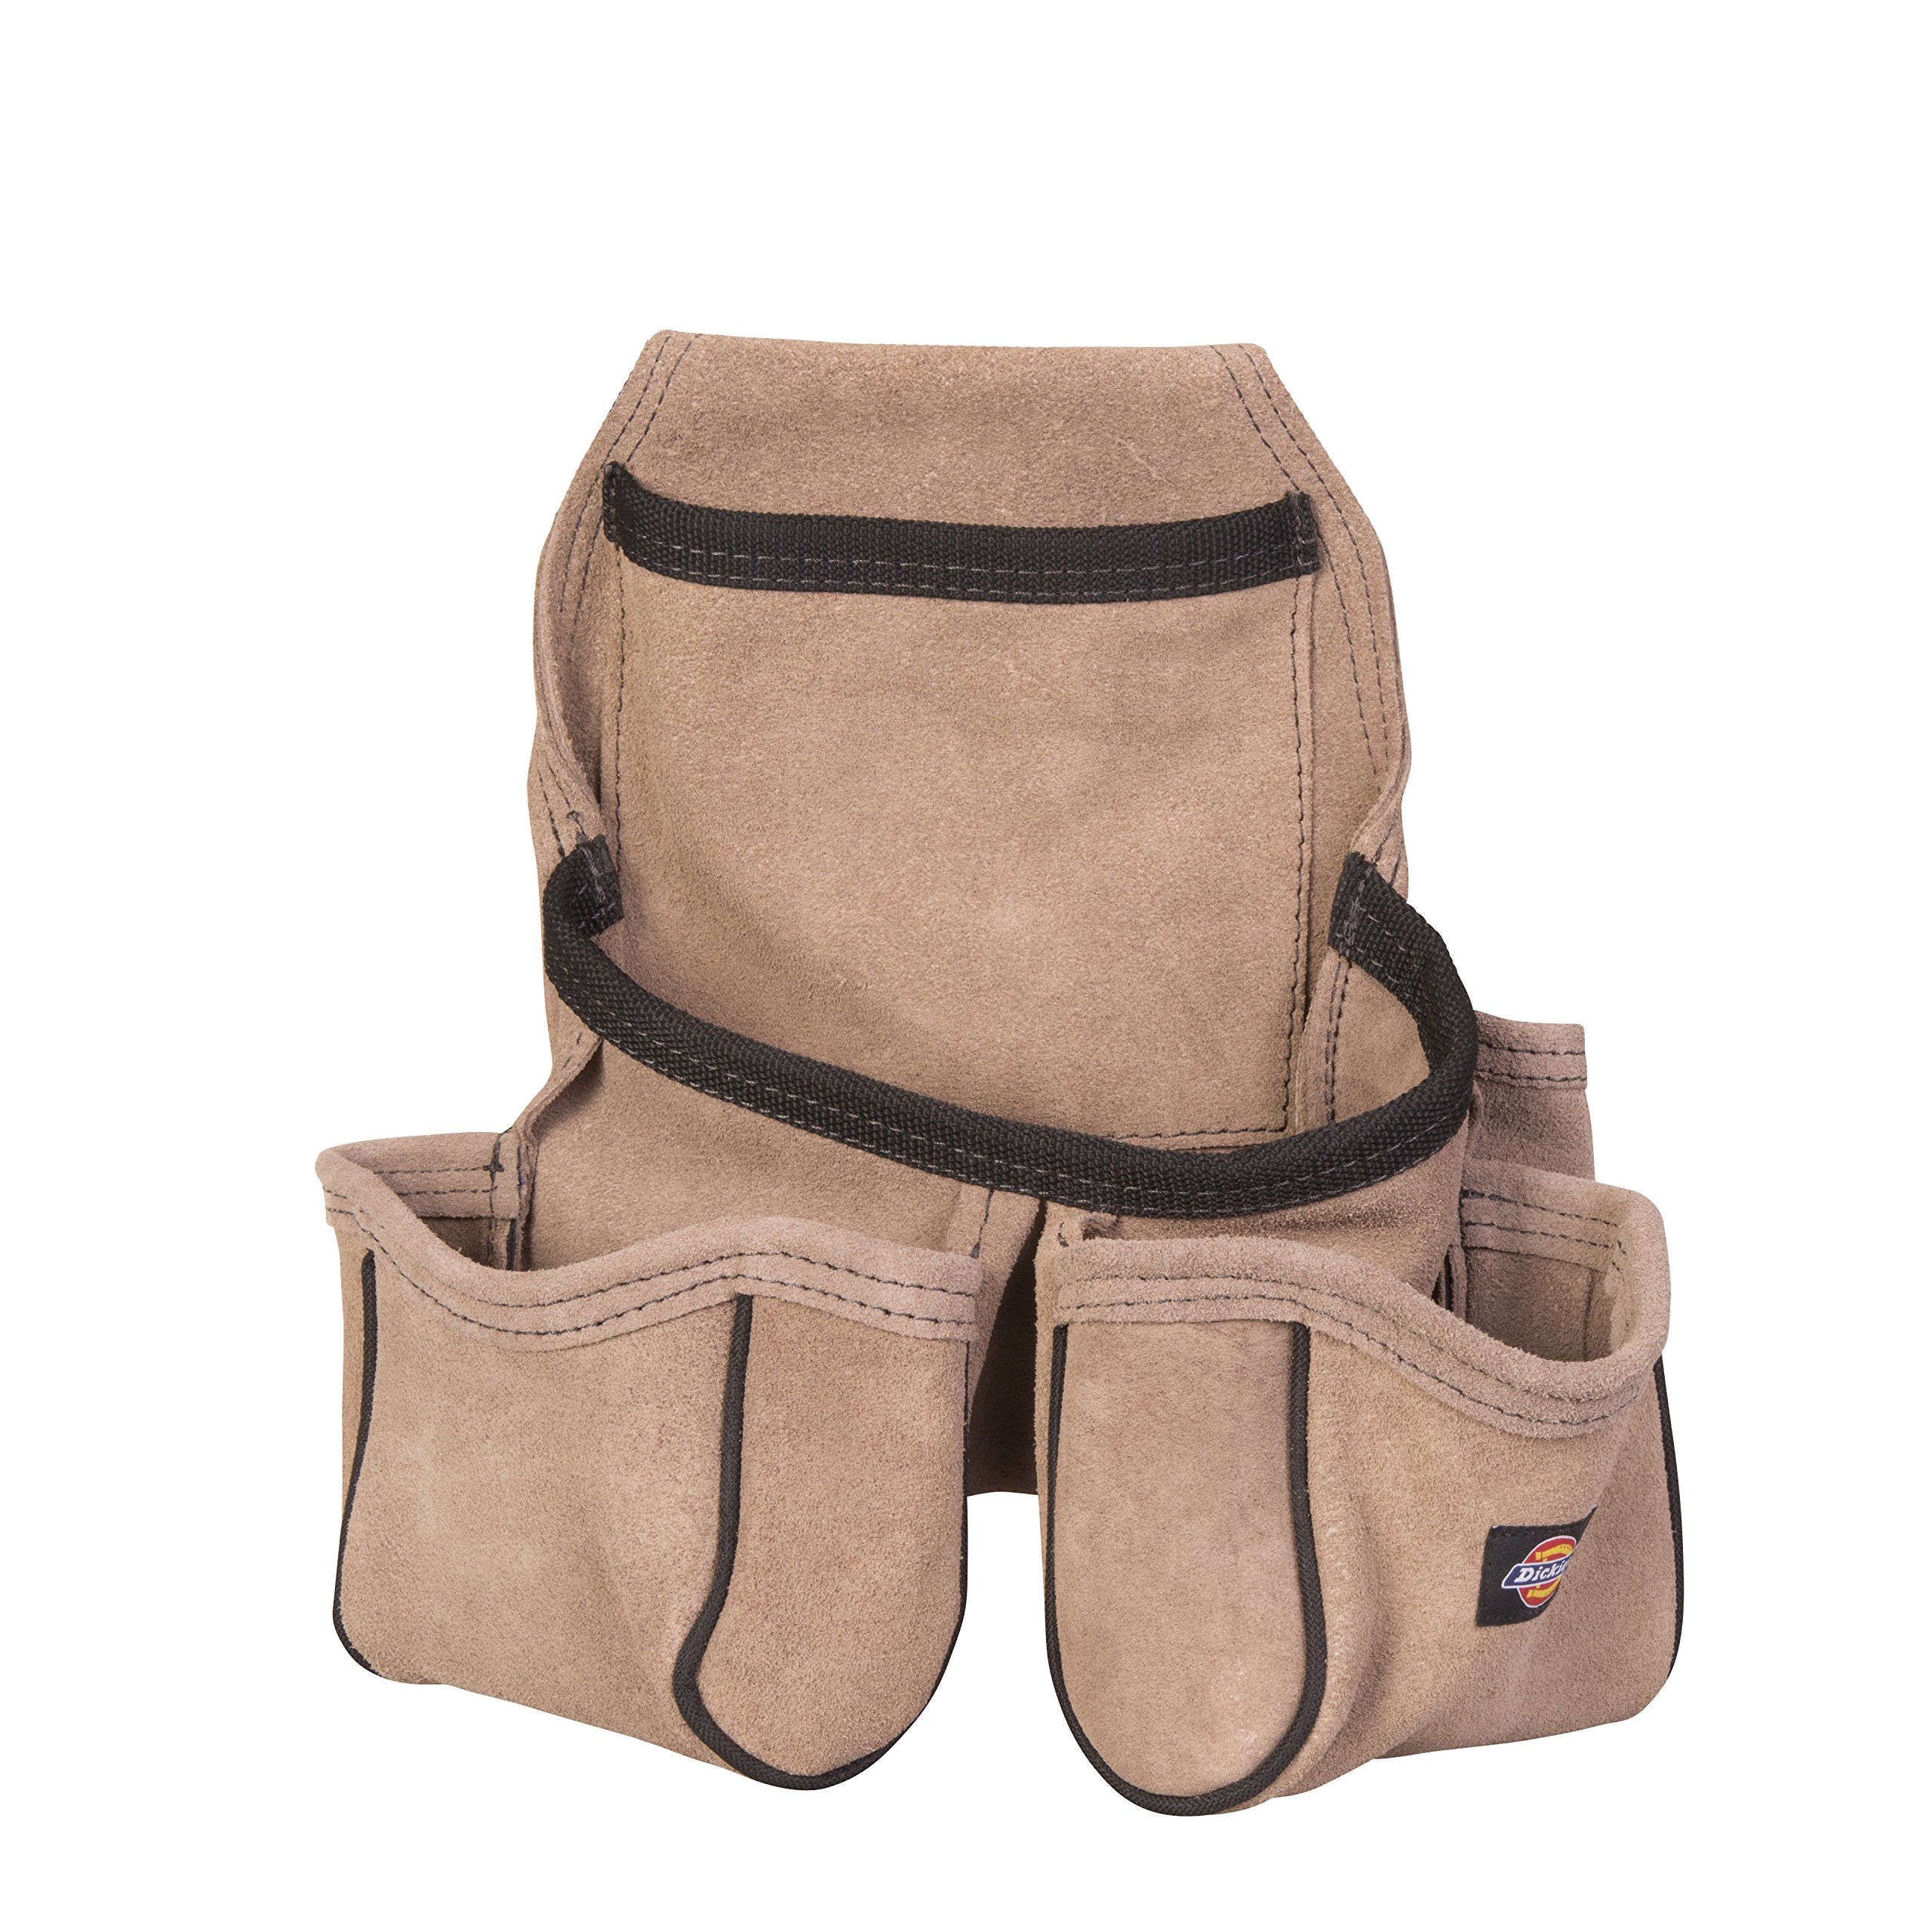 Dickies Work Gear 57029 4-Pocket Leather Tool Pouch